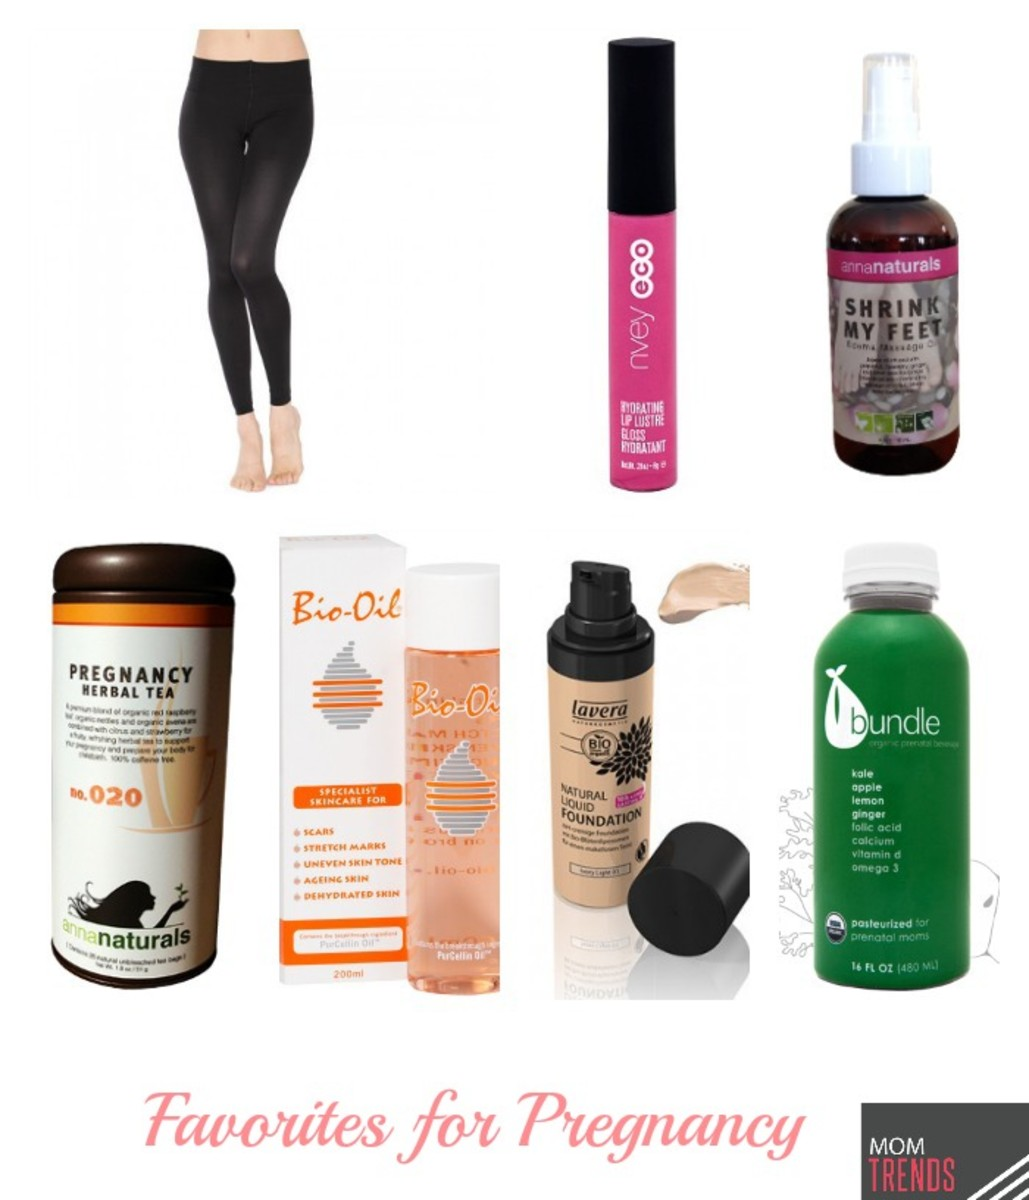 Pregnancy Staples and Trends